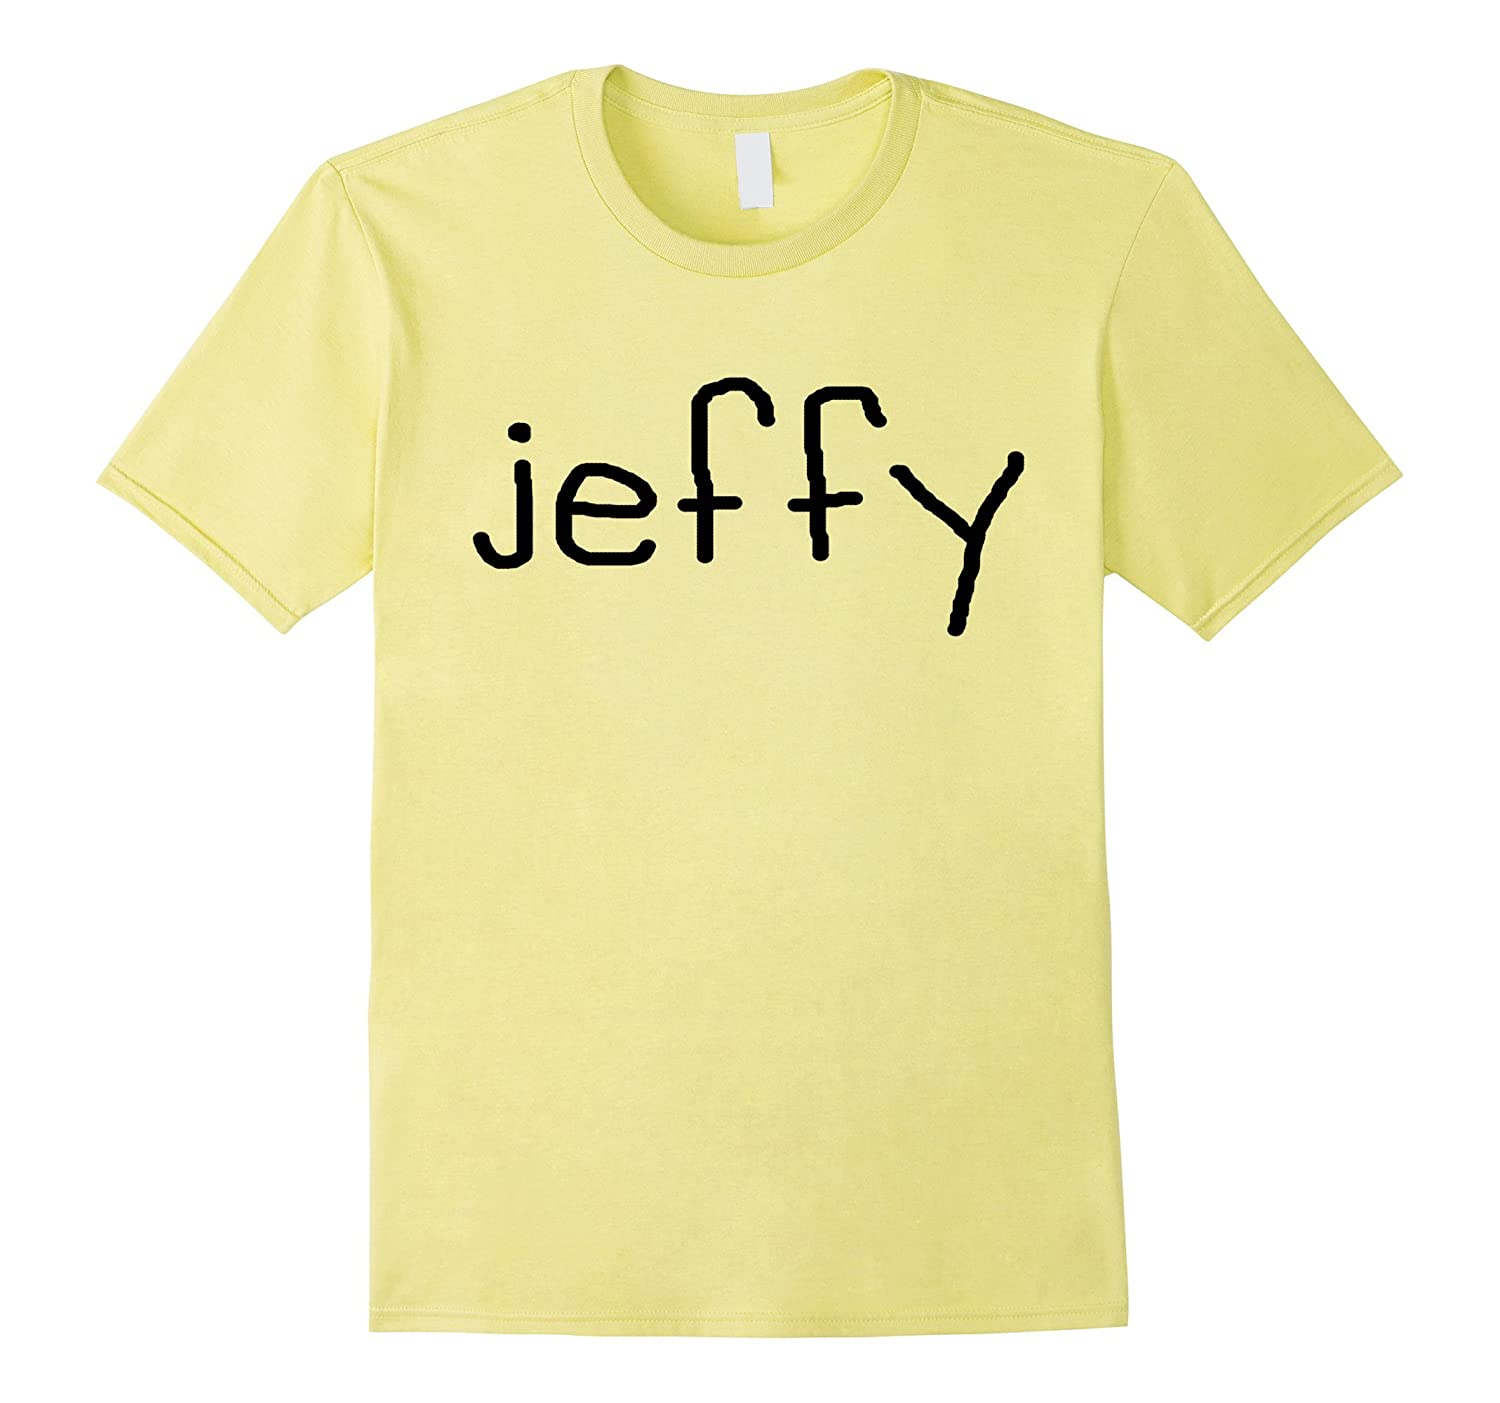 f4e8690b3 Jeffy Shirt Funny Gifts-Vaci – Vaciuk